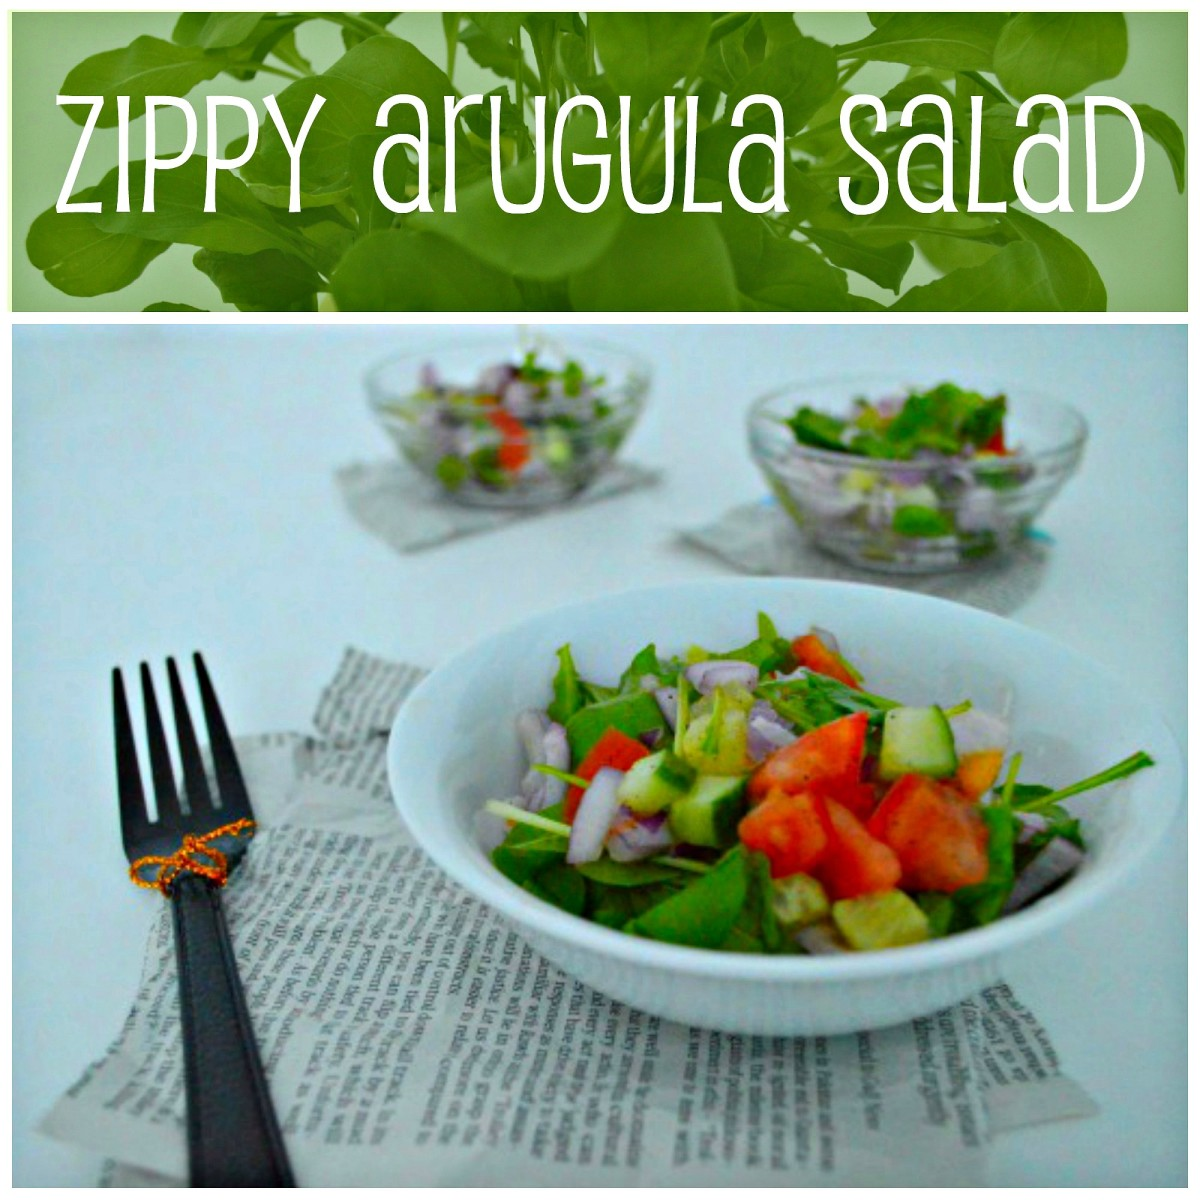 It's easy to make a simple yet striking salad with a snappy-flavoured leafy green like arugula. A squeeze of lemon and a dash of sea salt can transform salad rocket into a vibrant dish.